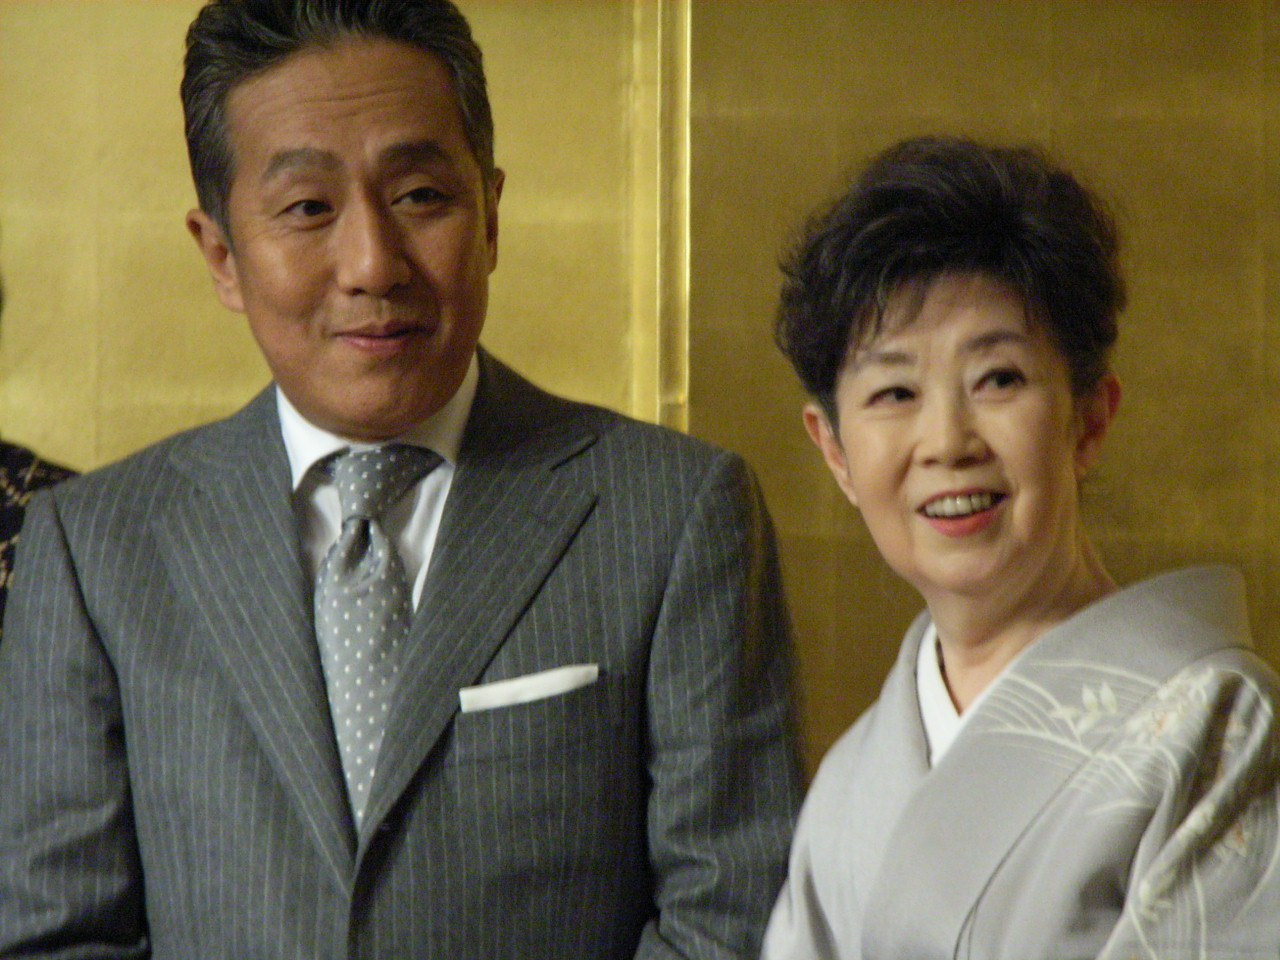 http://img.allabout.co.jp/gm/article/203011/topimg.jpg